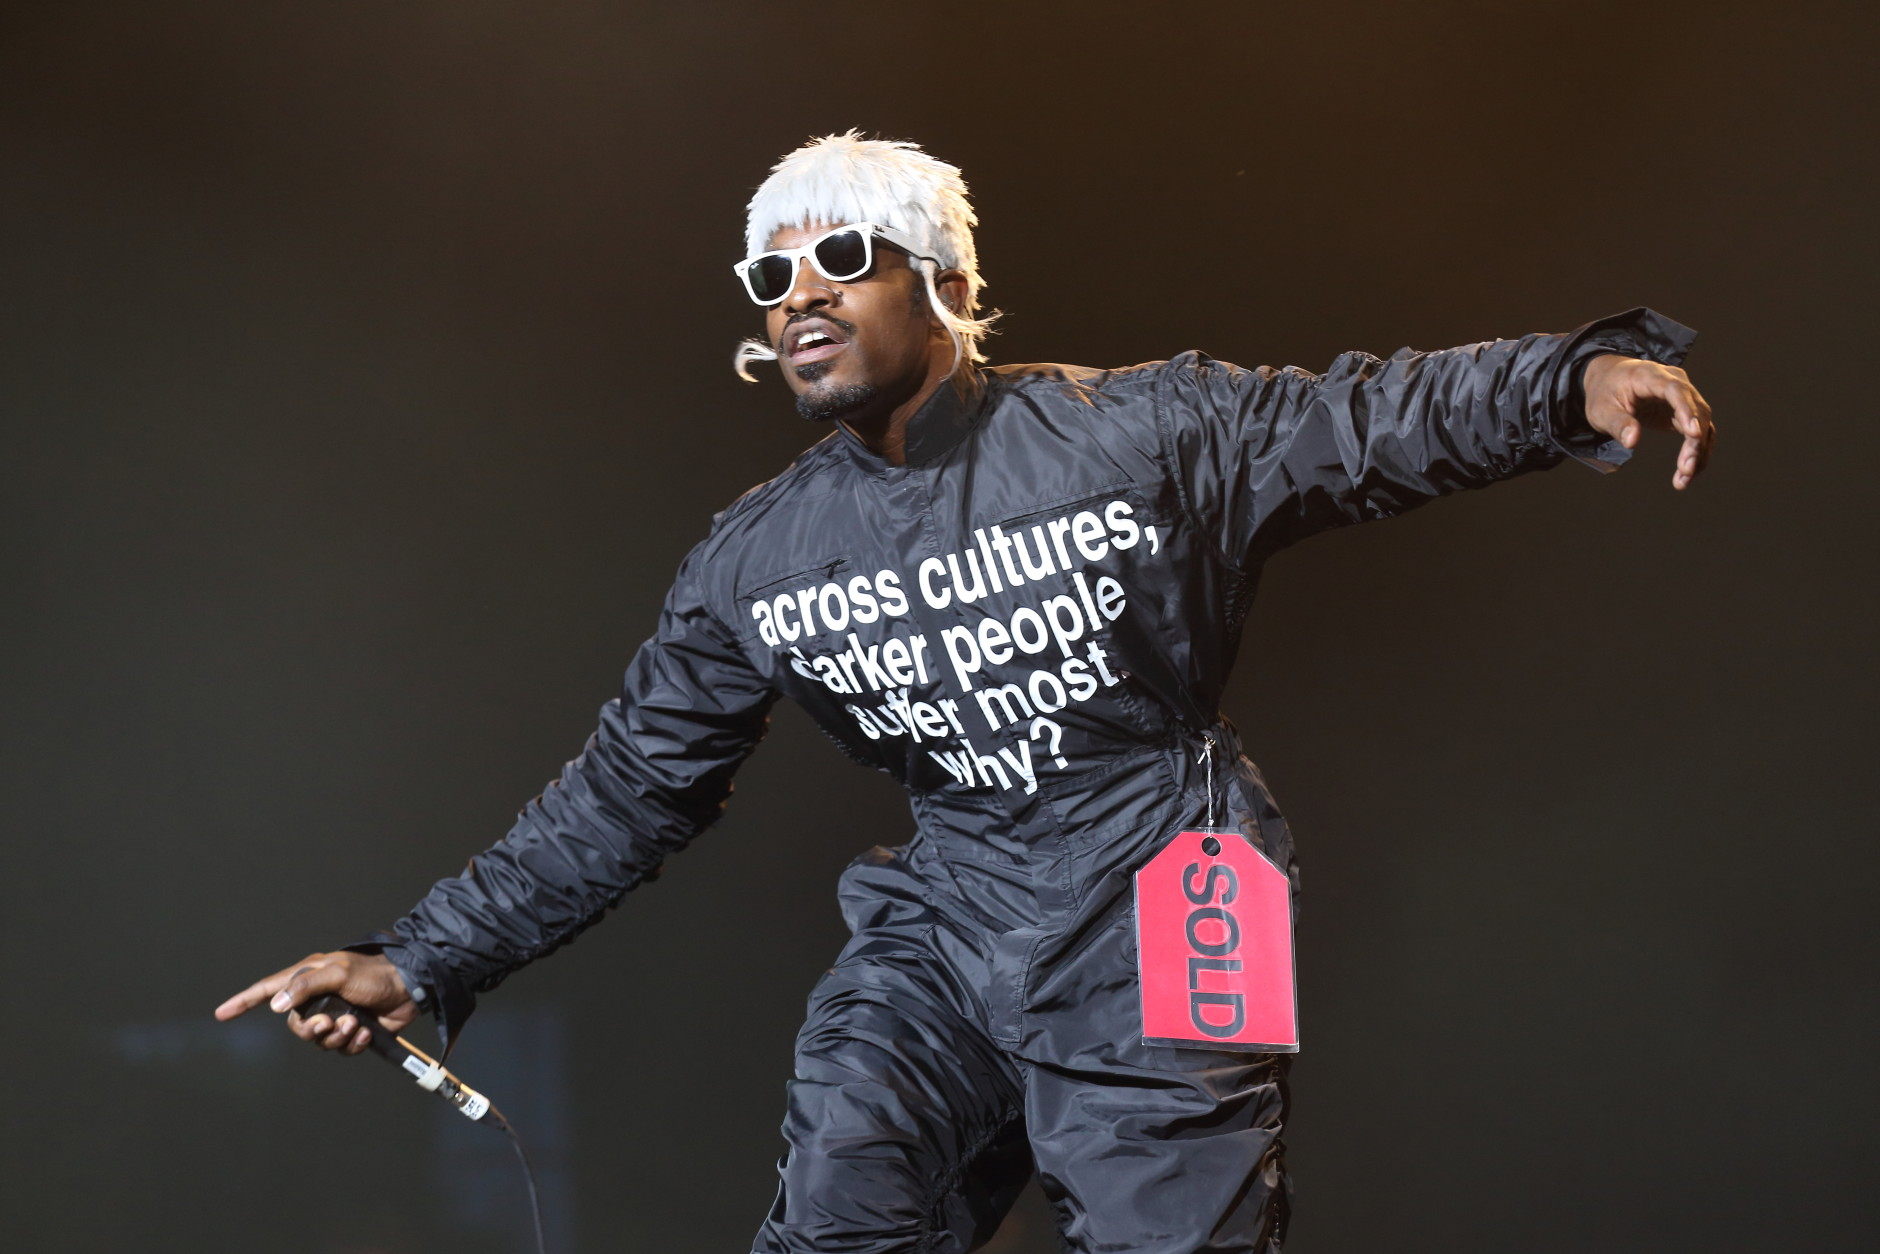 Andre 3000 of Outkast perform at Lollapalooza in Chicago's Grant Park on Saturday, Aug. 2, 2014. (Photo by Steve C.  Mitchell/Invision/AP)